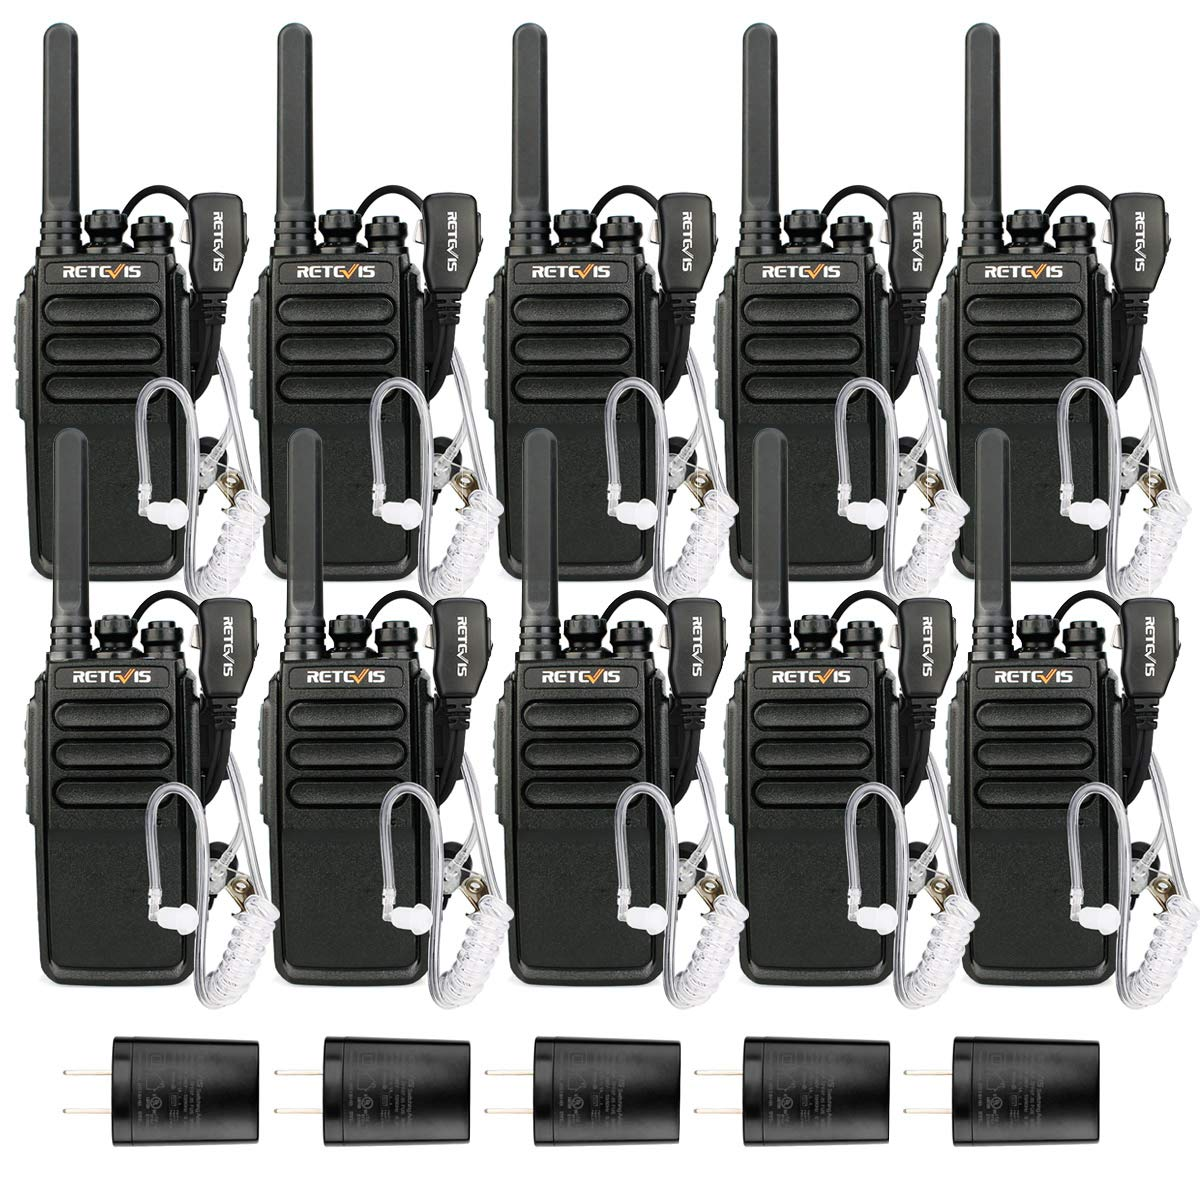 Retevis RT28 Walkie-Talkies with Earpiece Two-Way Radios Long Range Rechargeable FRS EmergencyAlarm VOX Handsfree 2 Way Radios Commercial (10 Pack) by Retevis